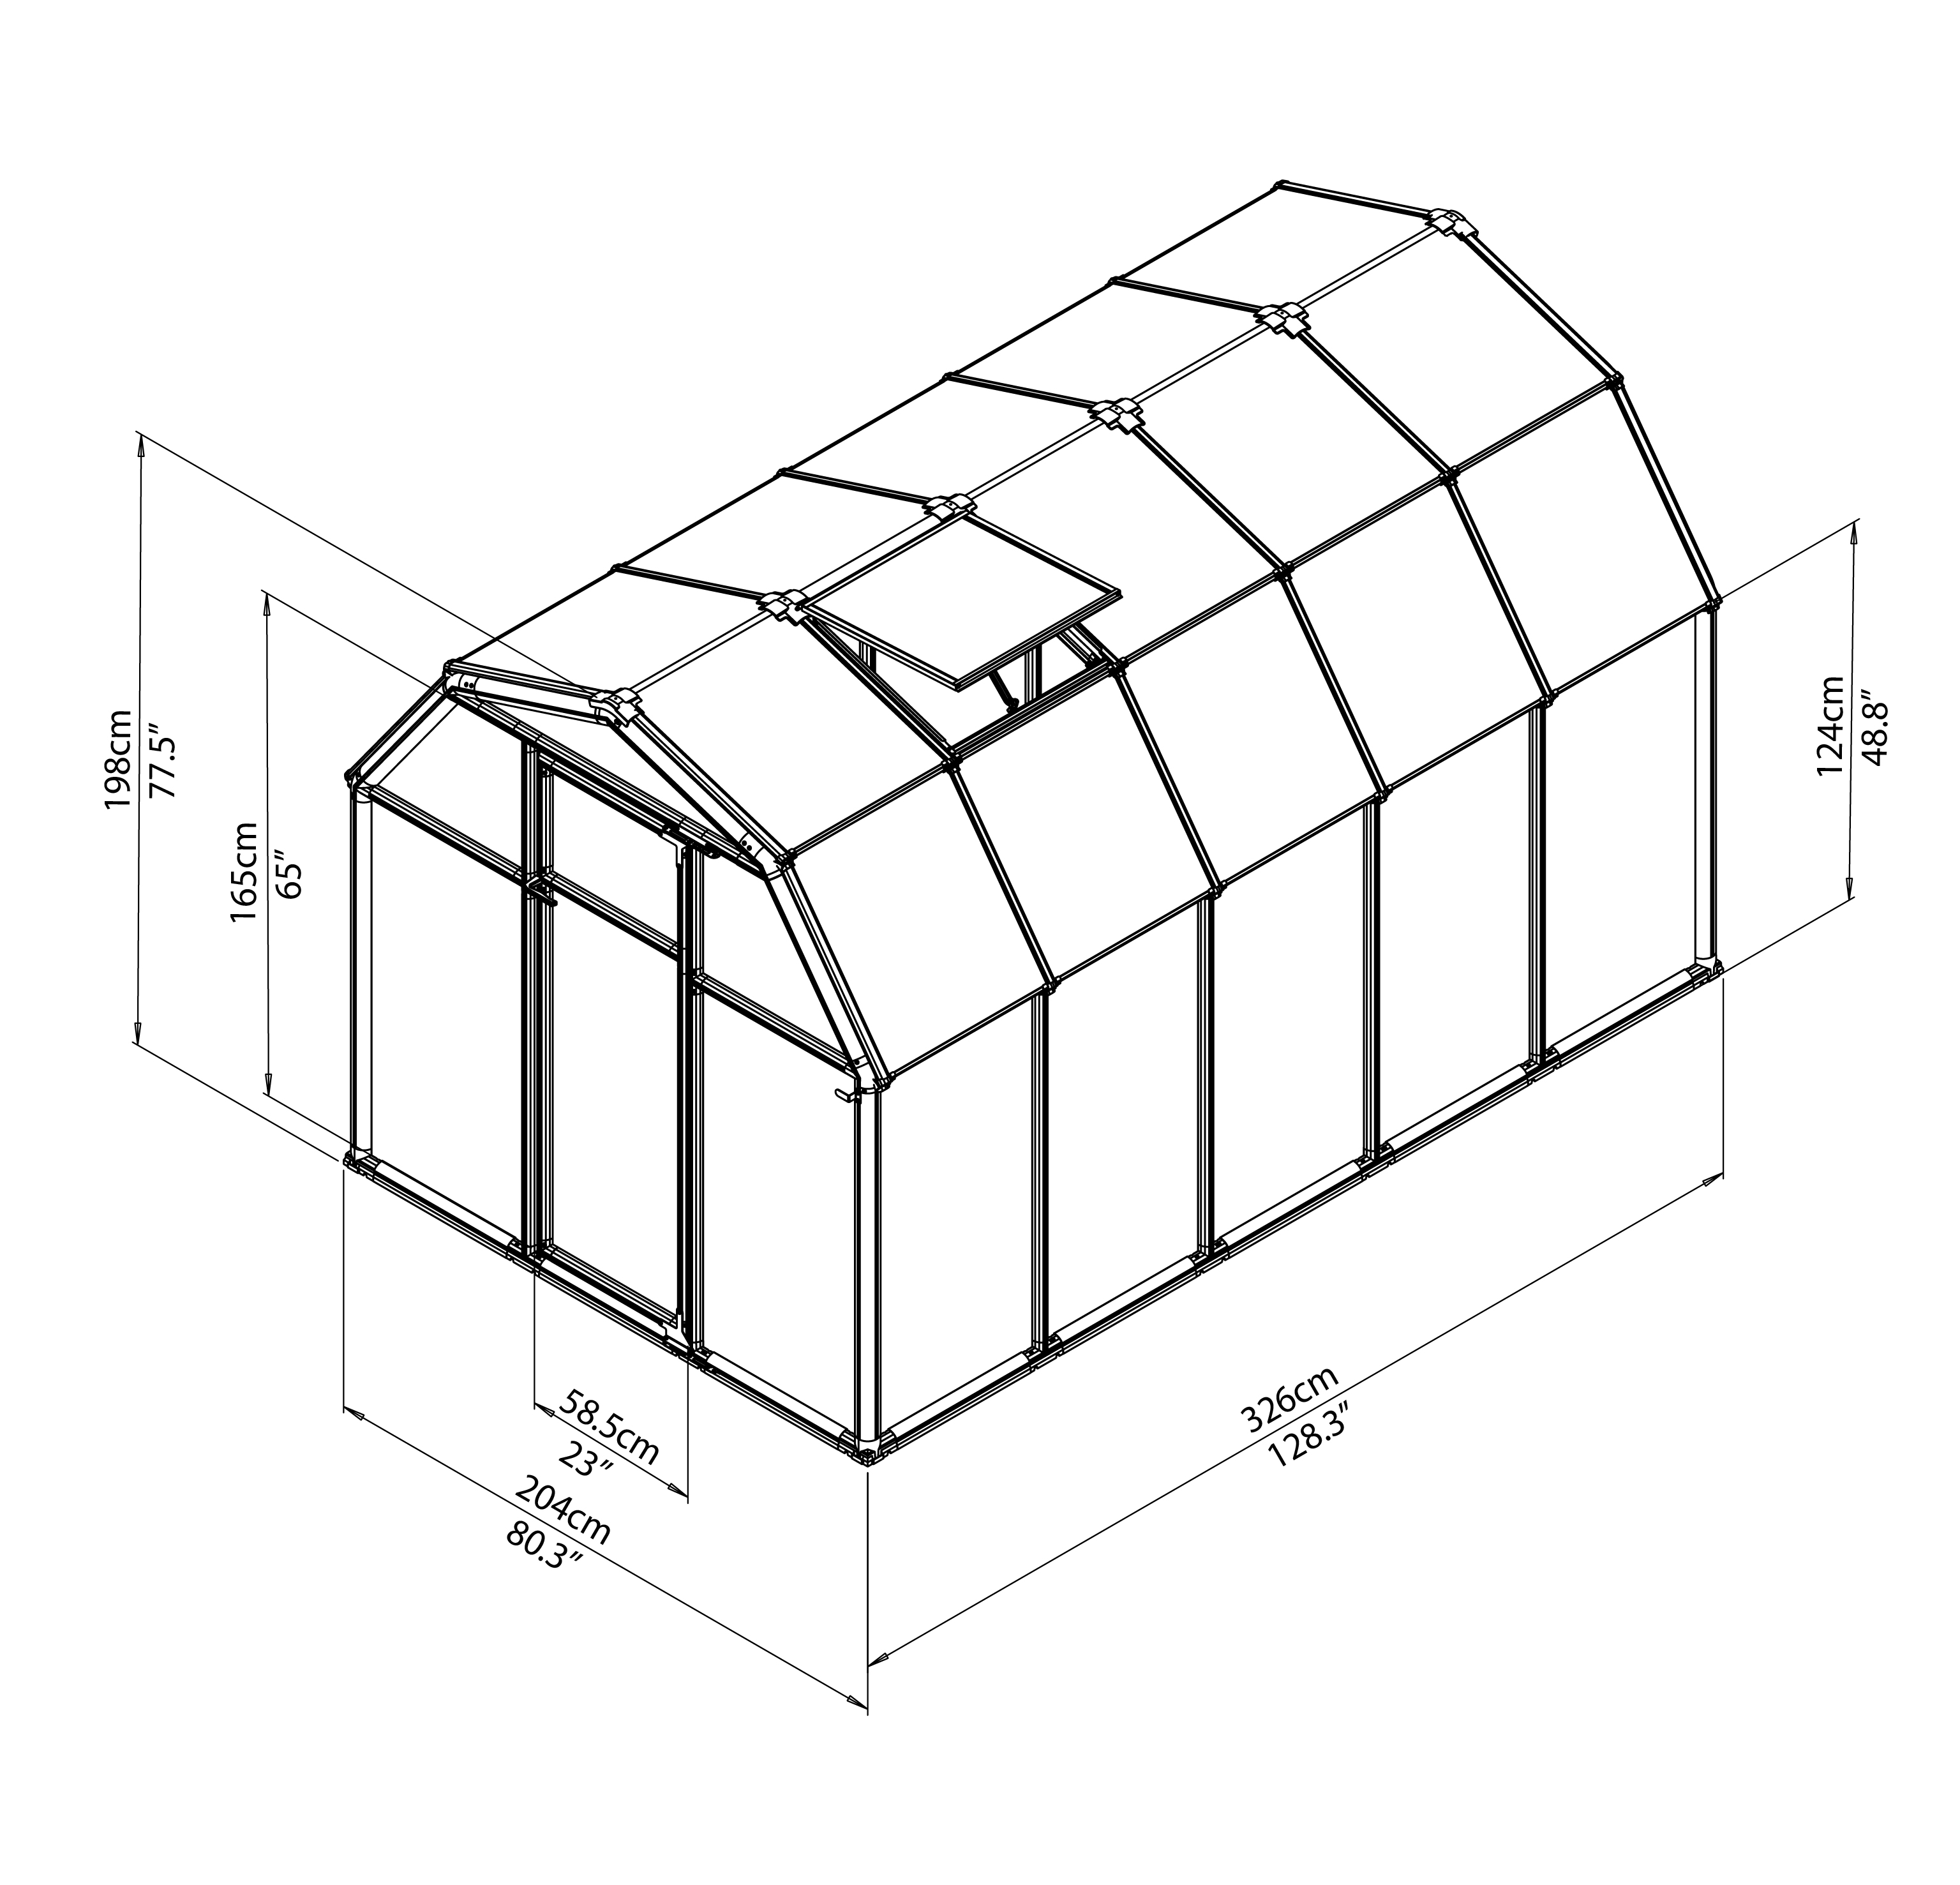 rion-greenhouses-eco-grow-6x10-drawing-isoview.jpg